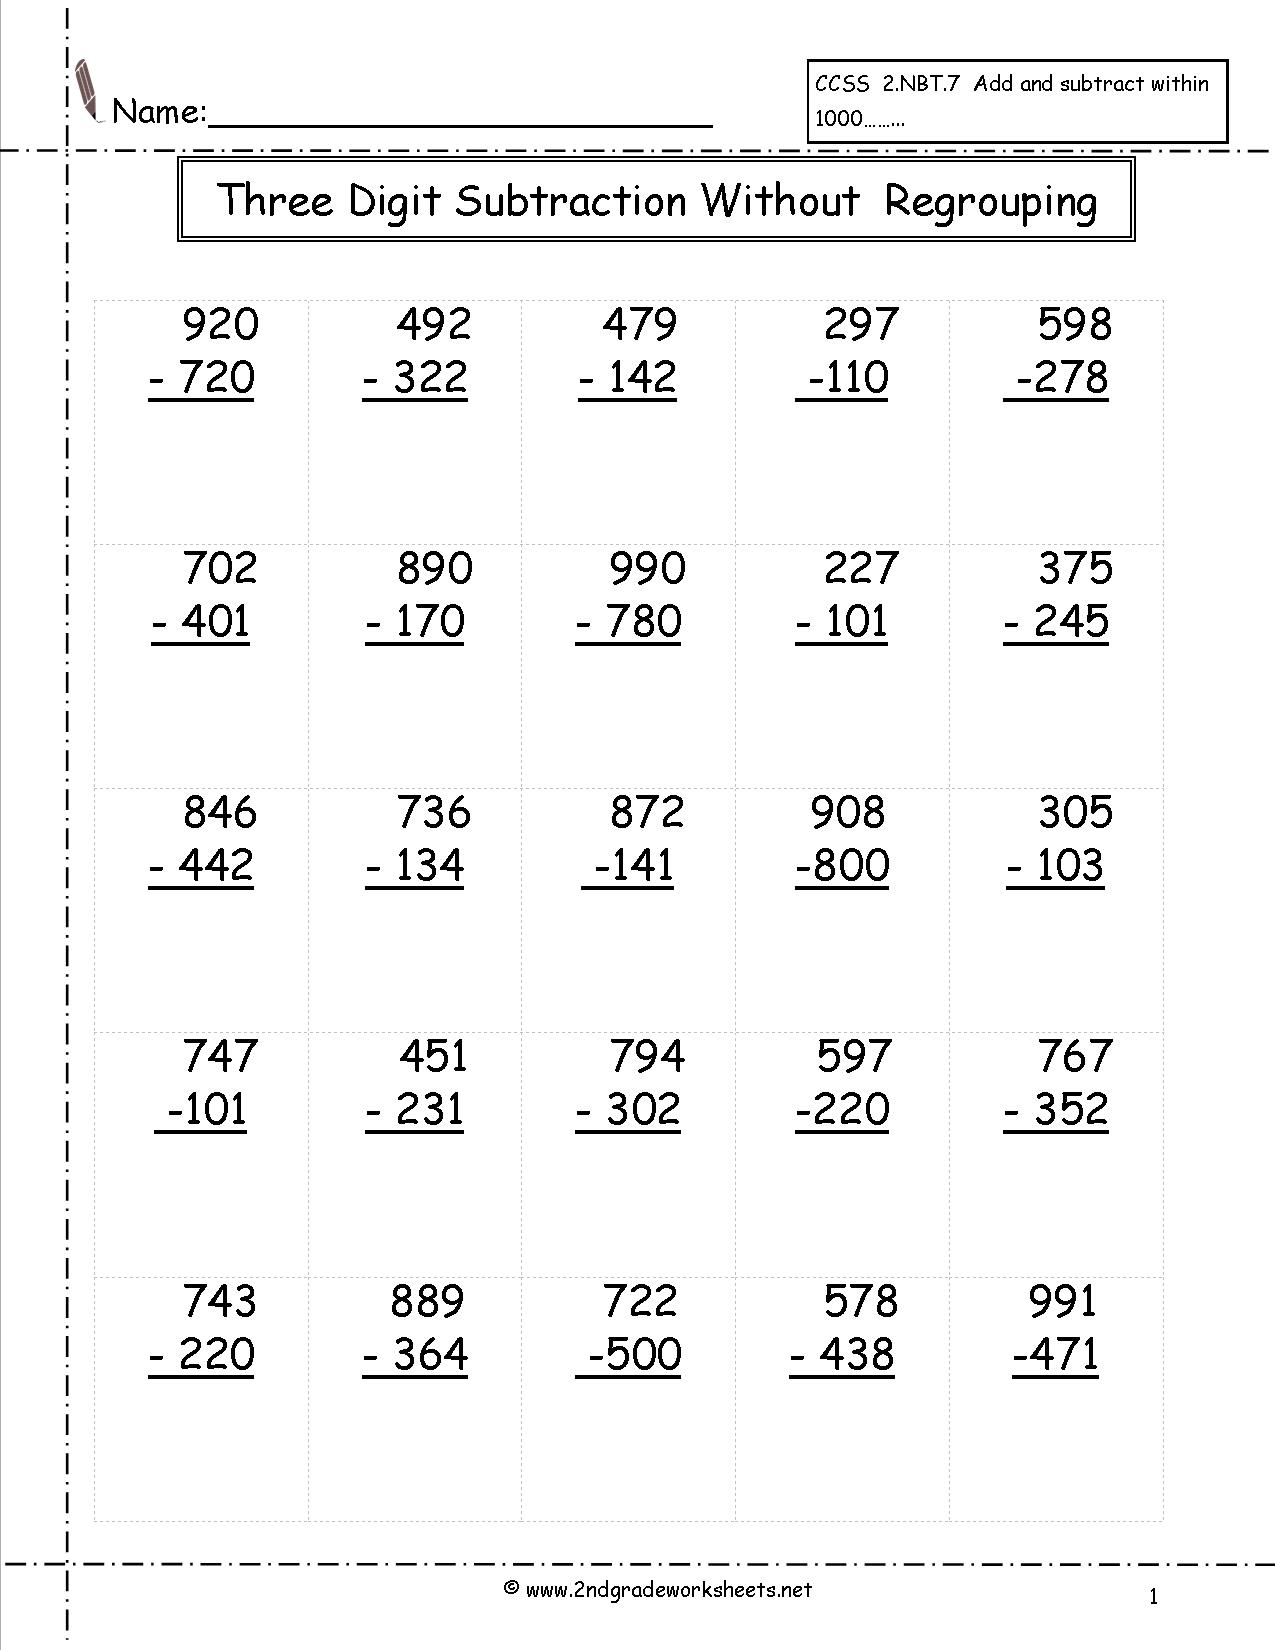 Three Digit Subtraction Worksheets | Printable Subtraction Worksheets With Regrouping